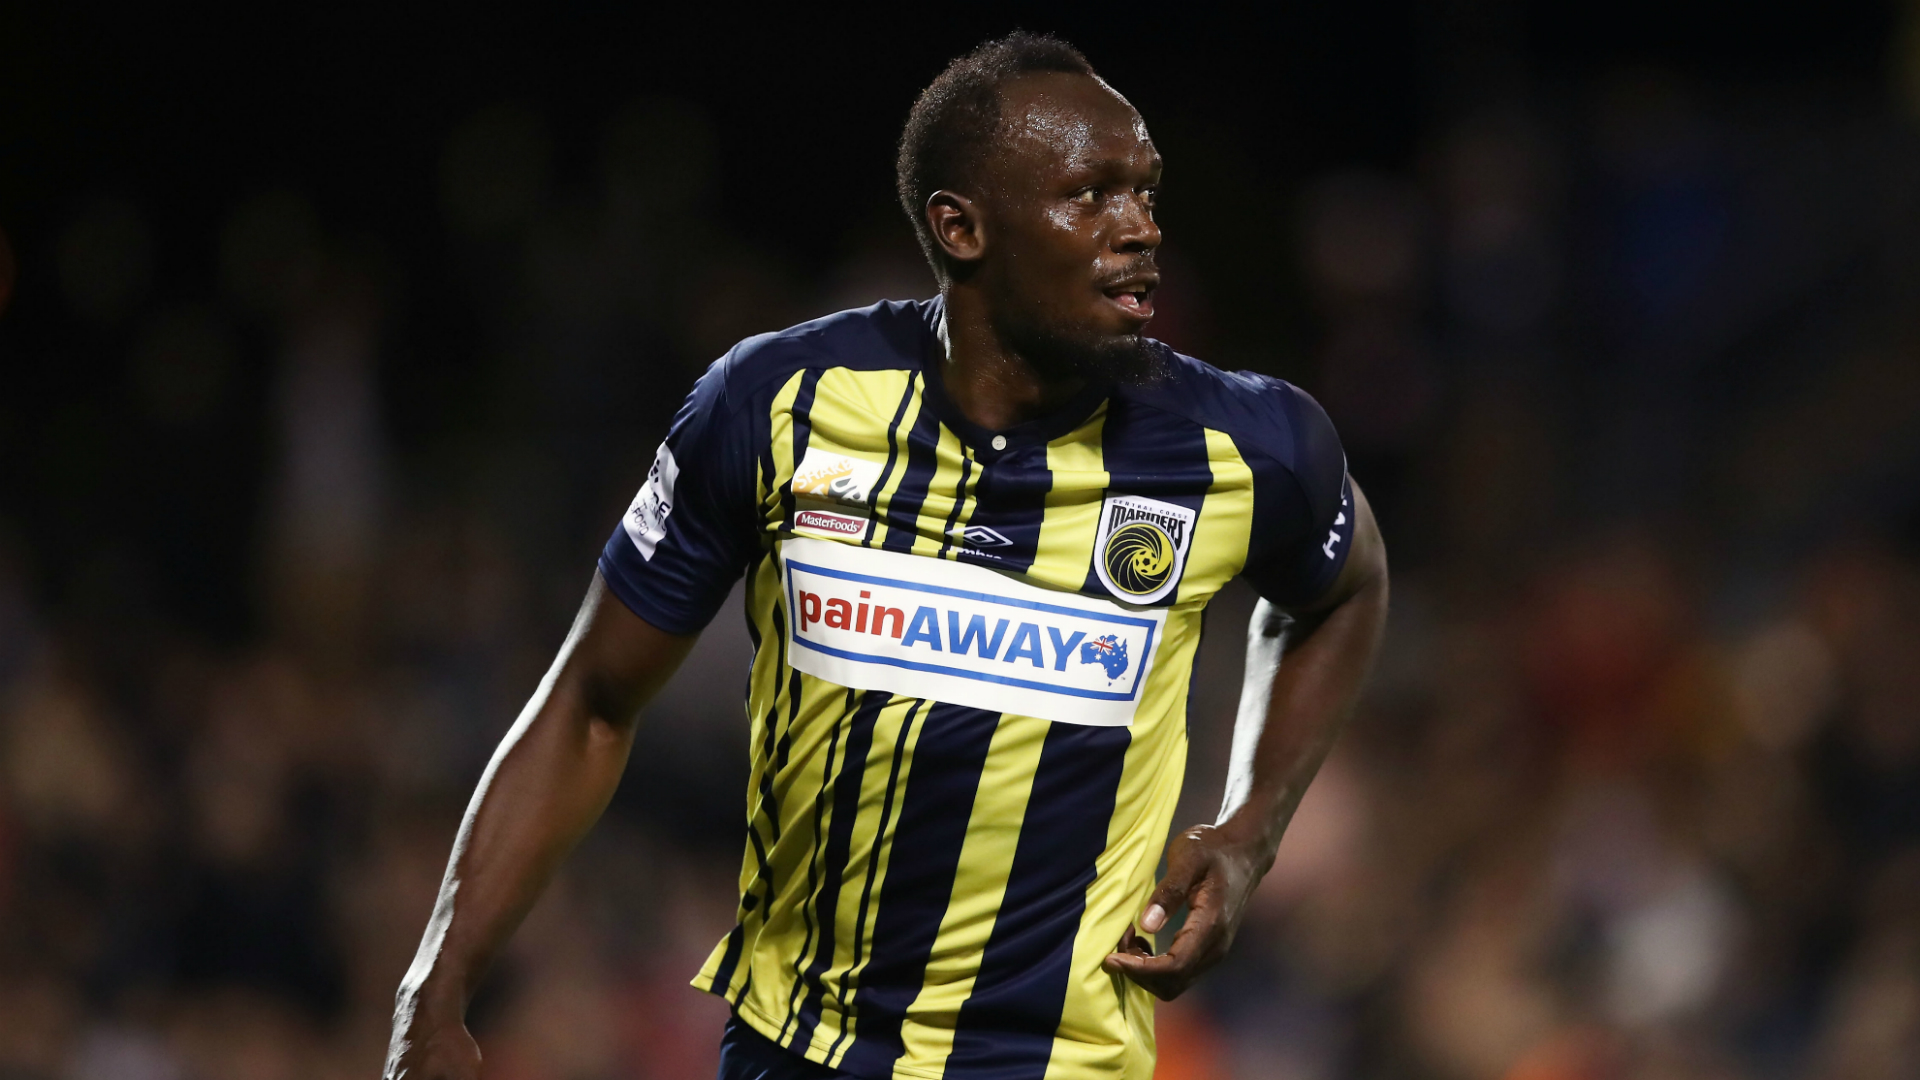 Bolt offered deal with Central Coast Mariners